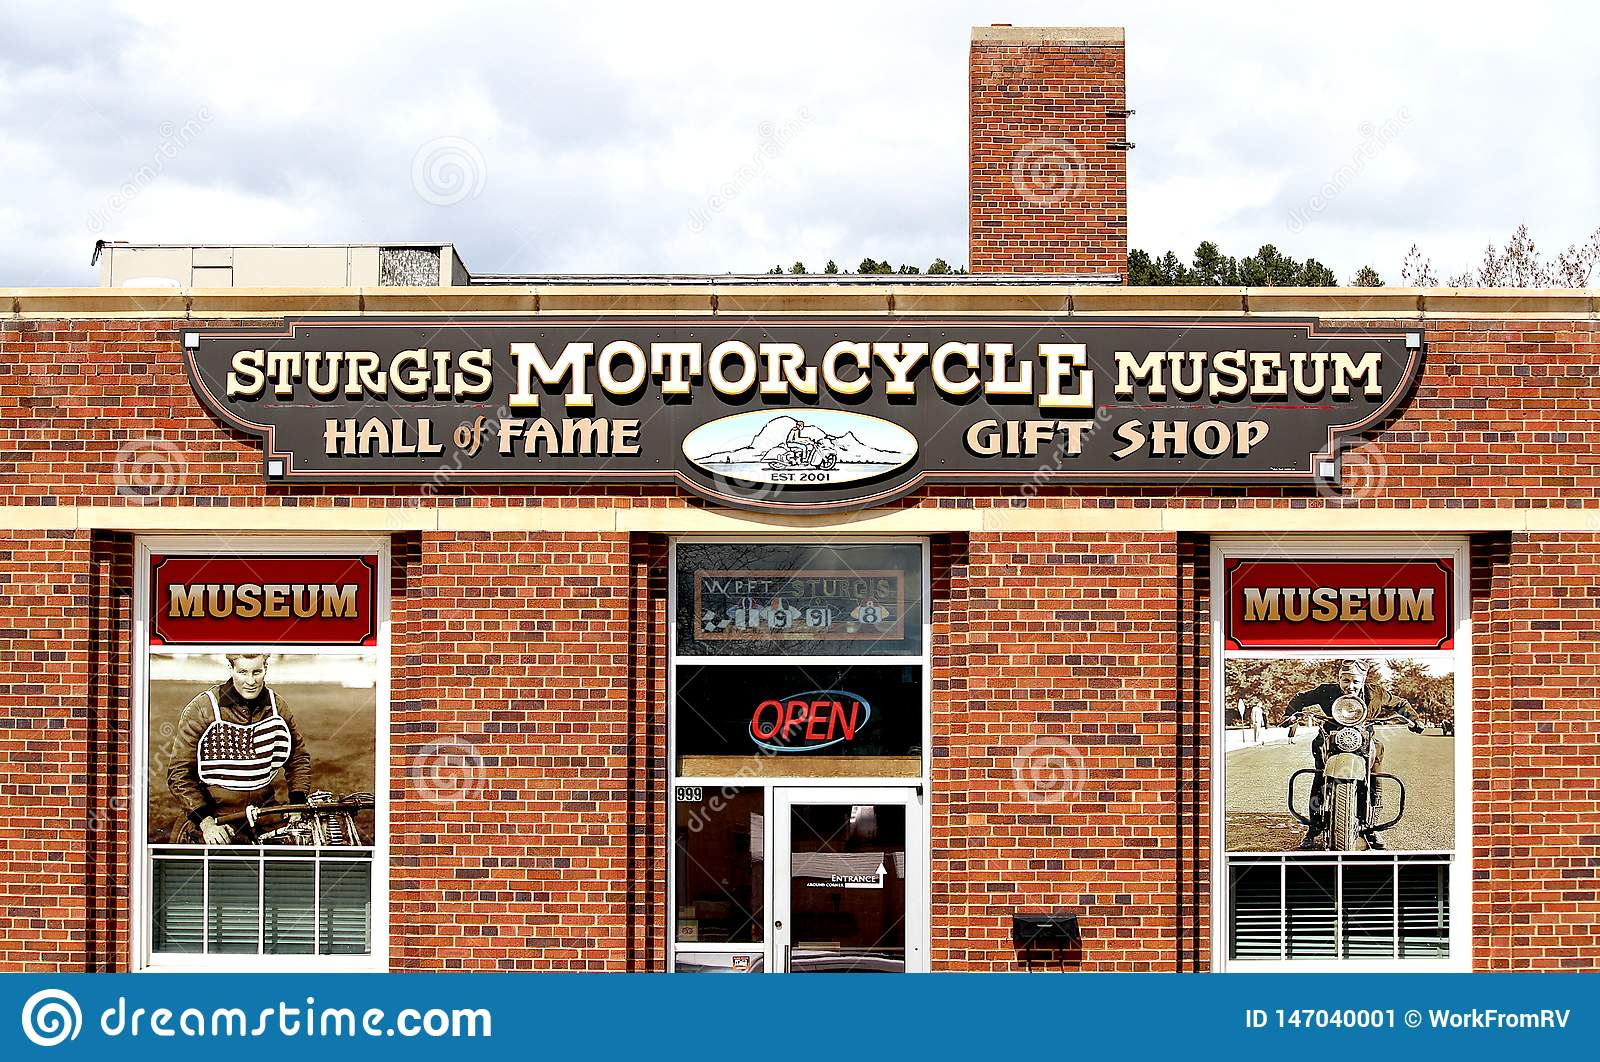 Sturgis Motorcycle Museum and Hall of Fame.